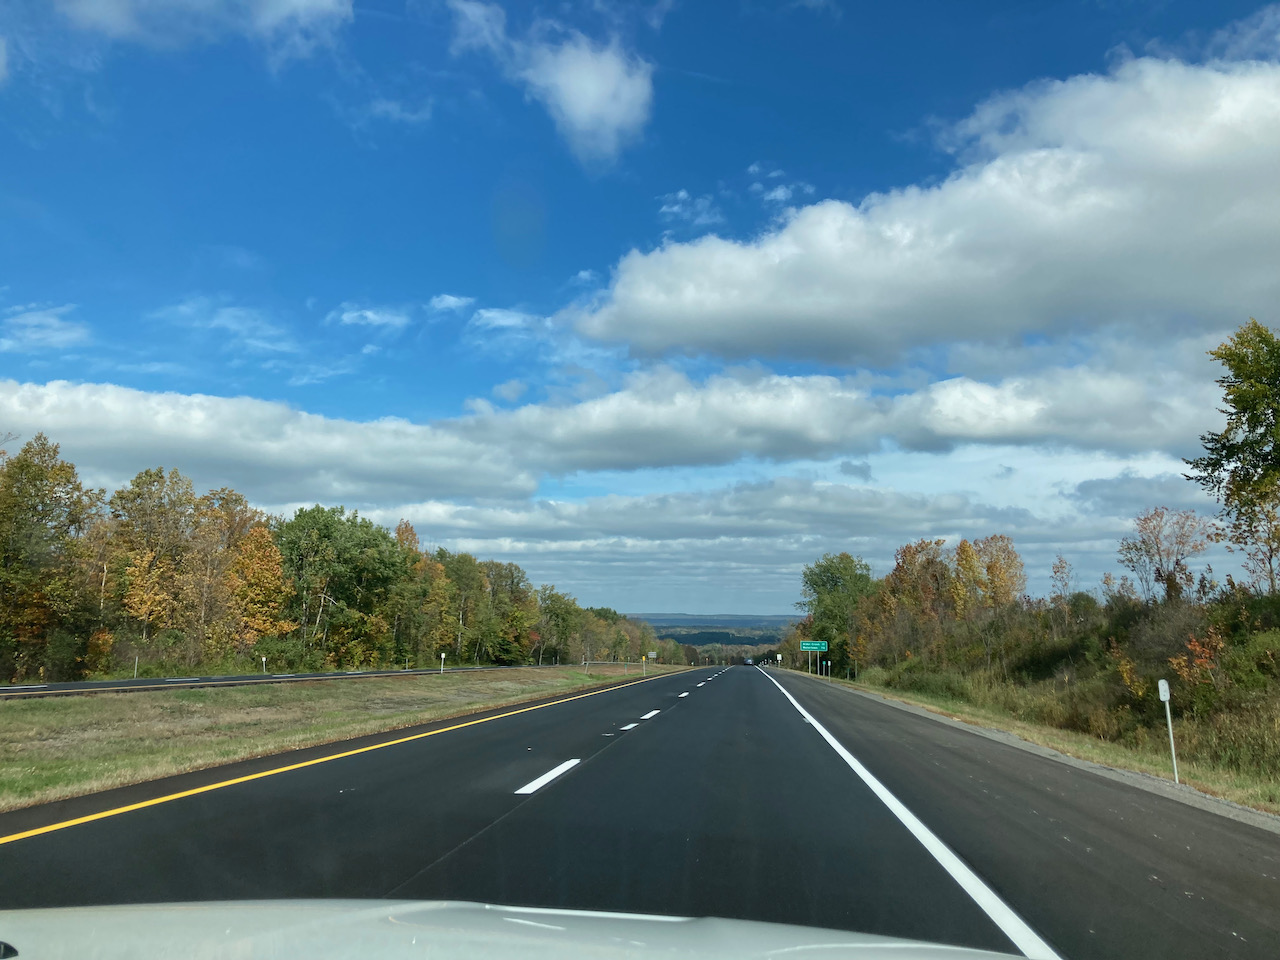 View of NY28 under a blue sky.